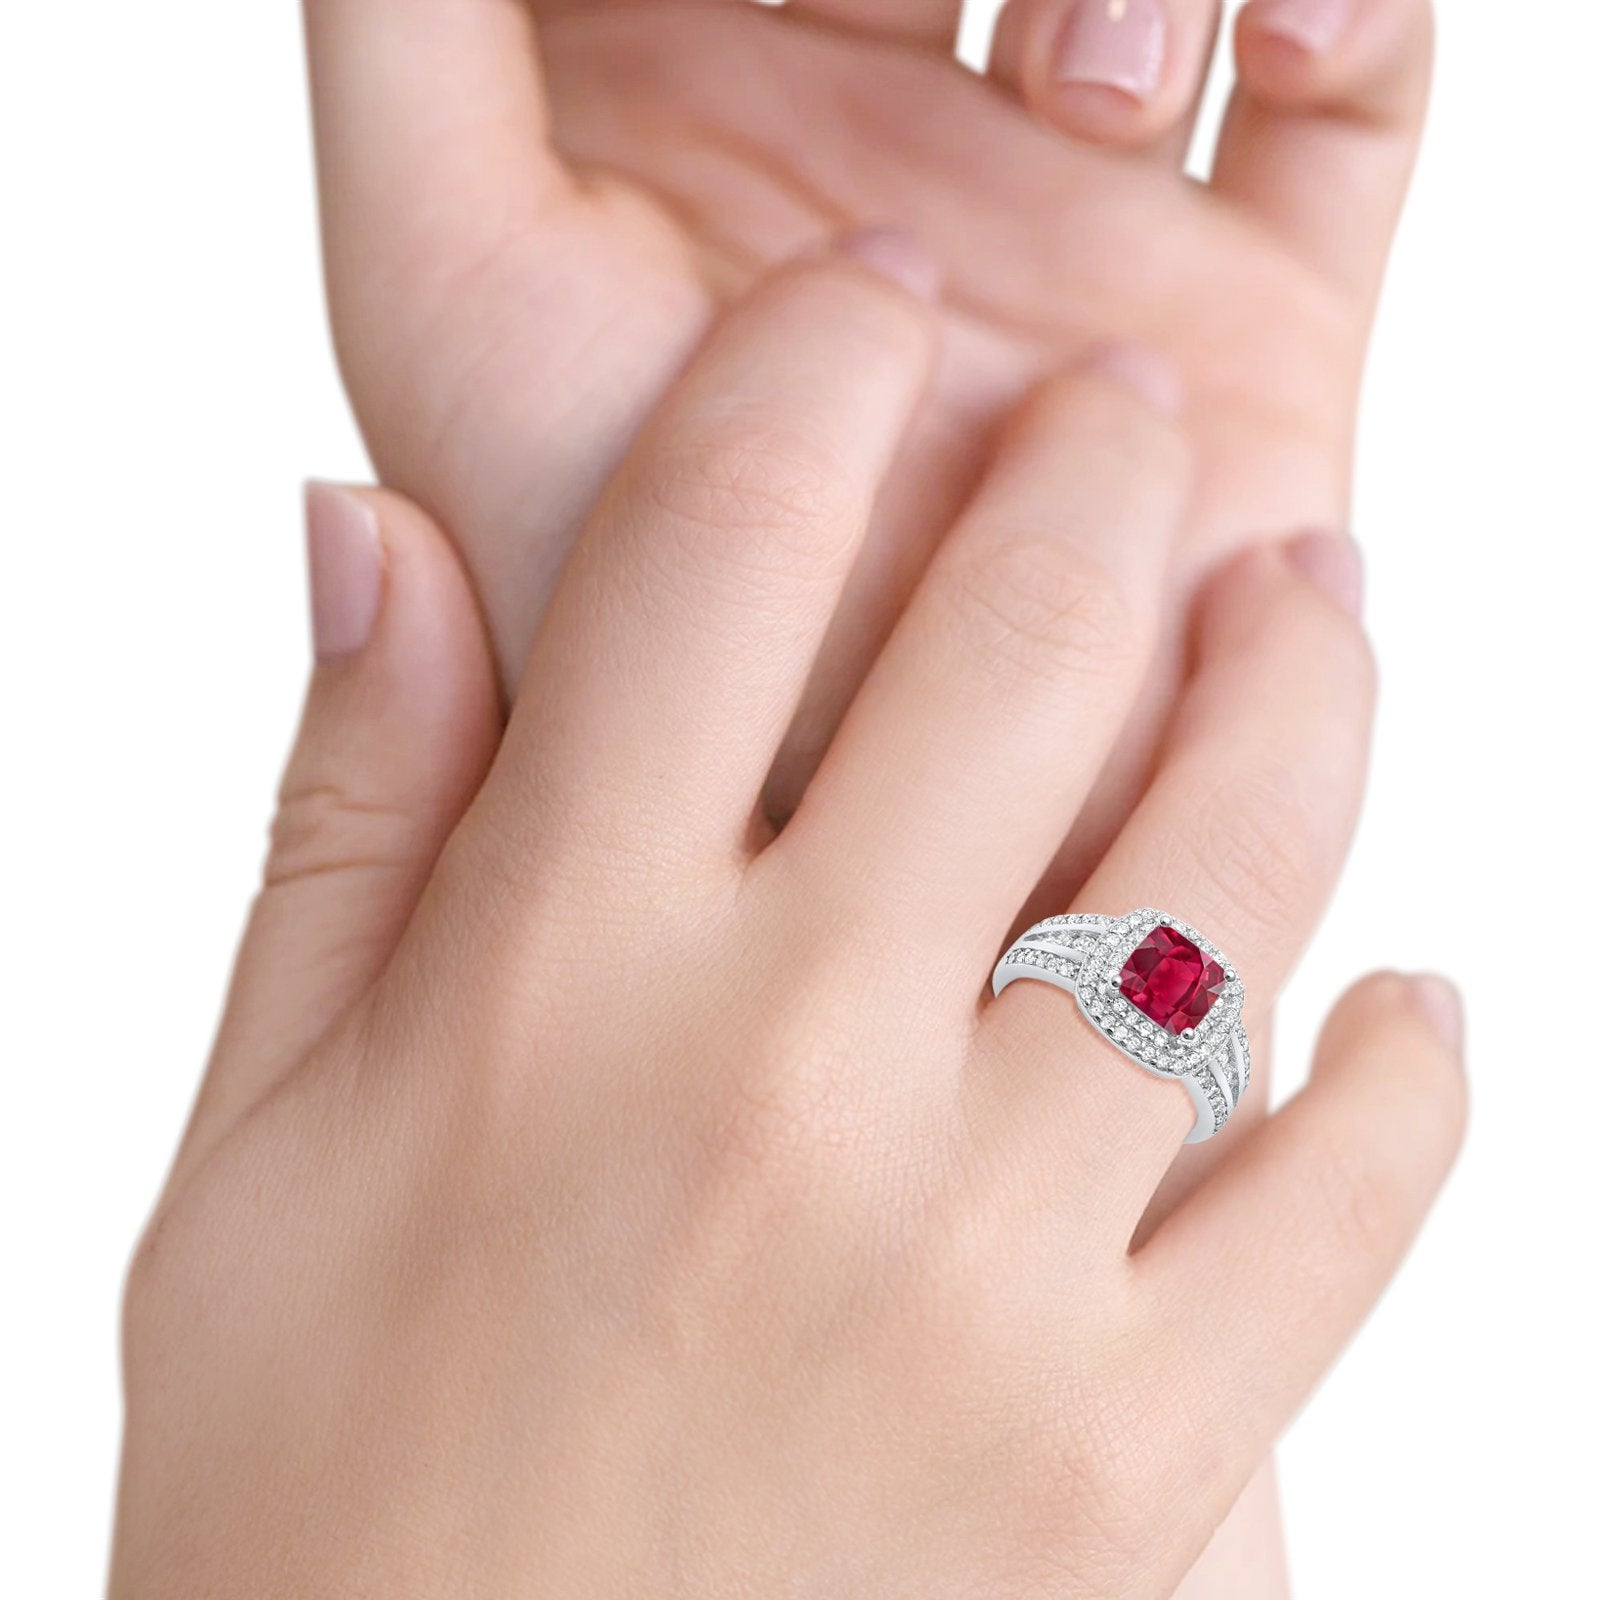 Halo Art Deco Wedding Ring Princess Cut Round Simulated Ruby CZ 925 Sterling Silver